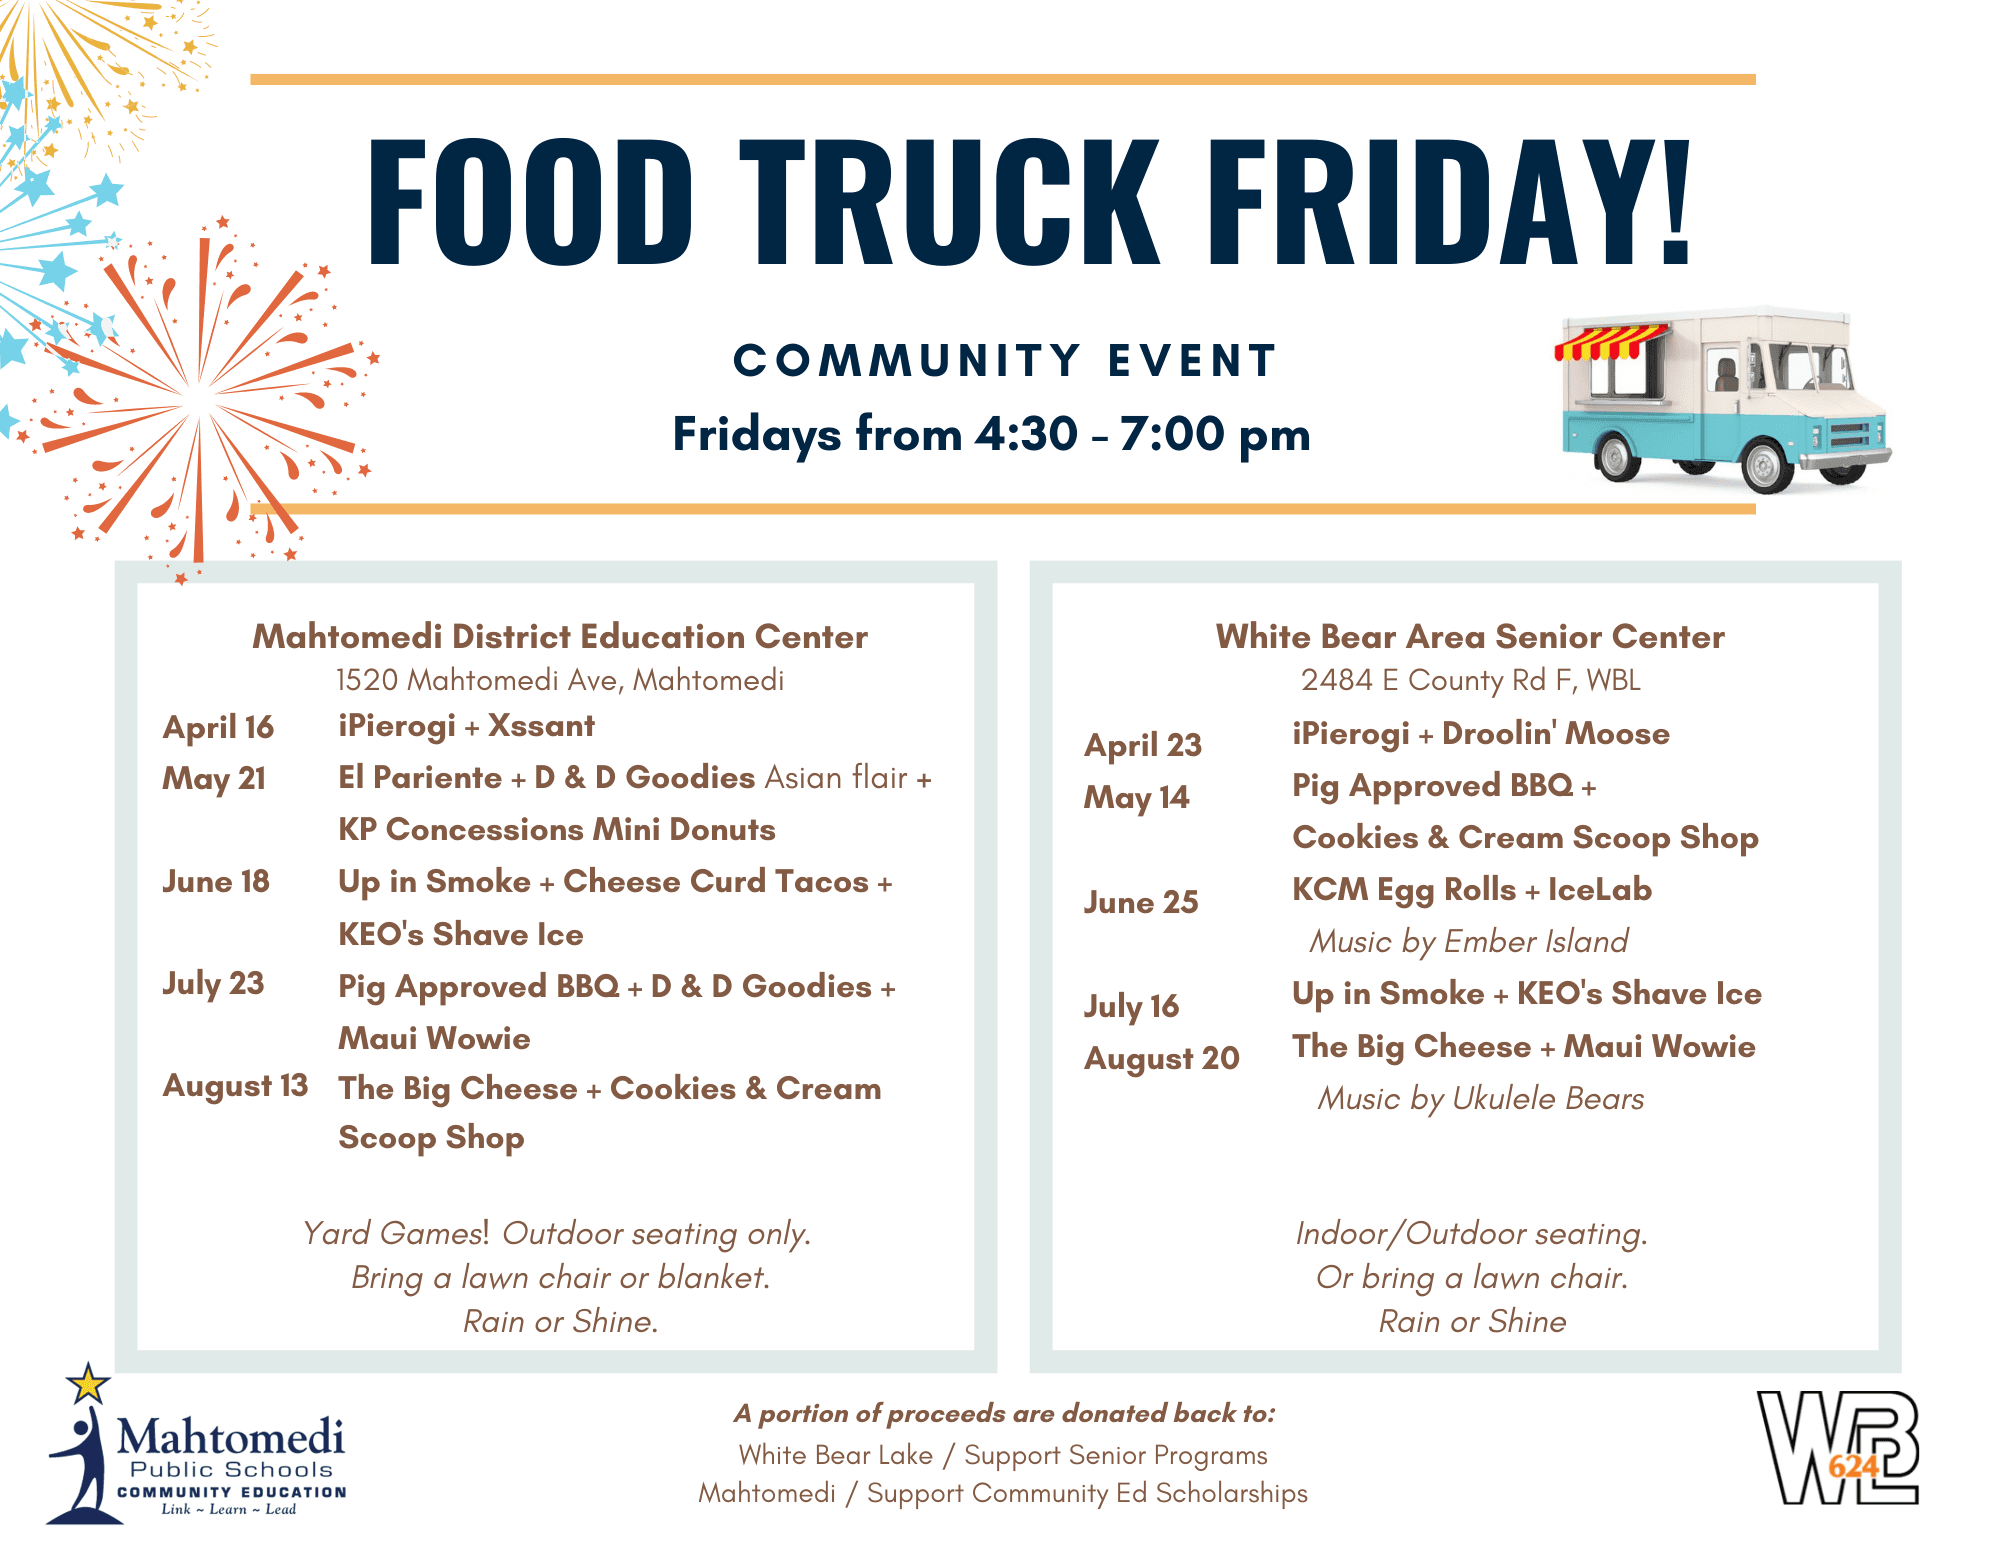 Mahtomedi Food Truck Flyer (IMAGE)